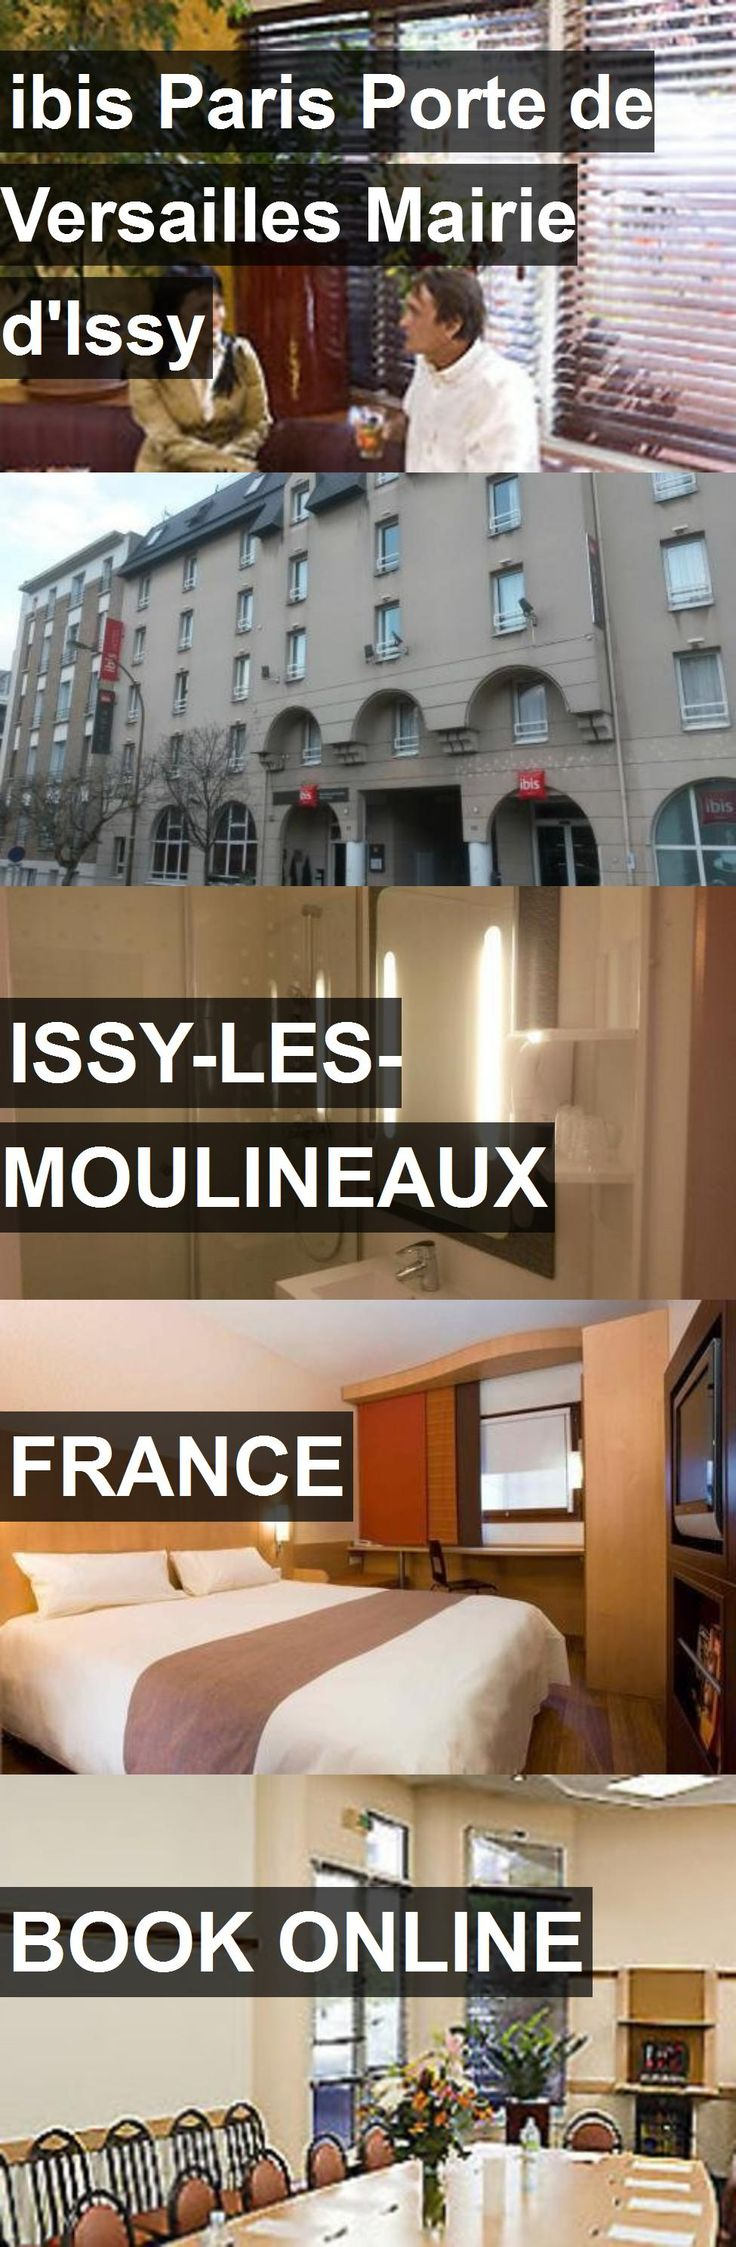 Hotel ibis Paris Porte de Versailles Mairie d'Issy in Issy-les-Moulineaux, France. For more information, photos, reviews and best prices please follow the link. #France #Issy-les-Moulineaux #ibisParisPortedeVersaillesMairied'Issy #hotel #travel #vacation